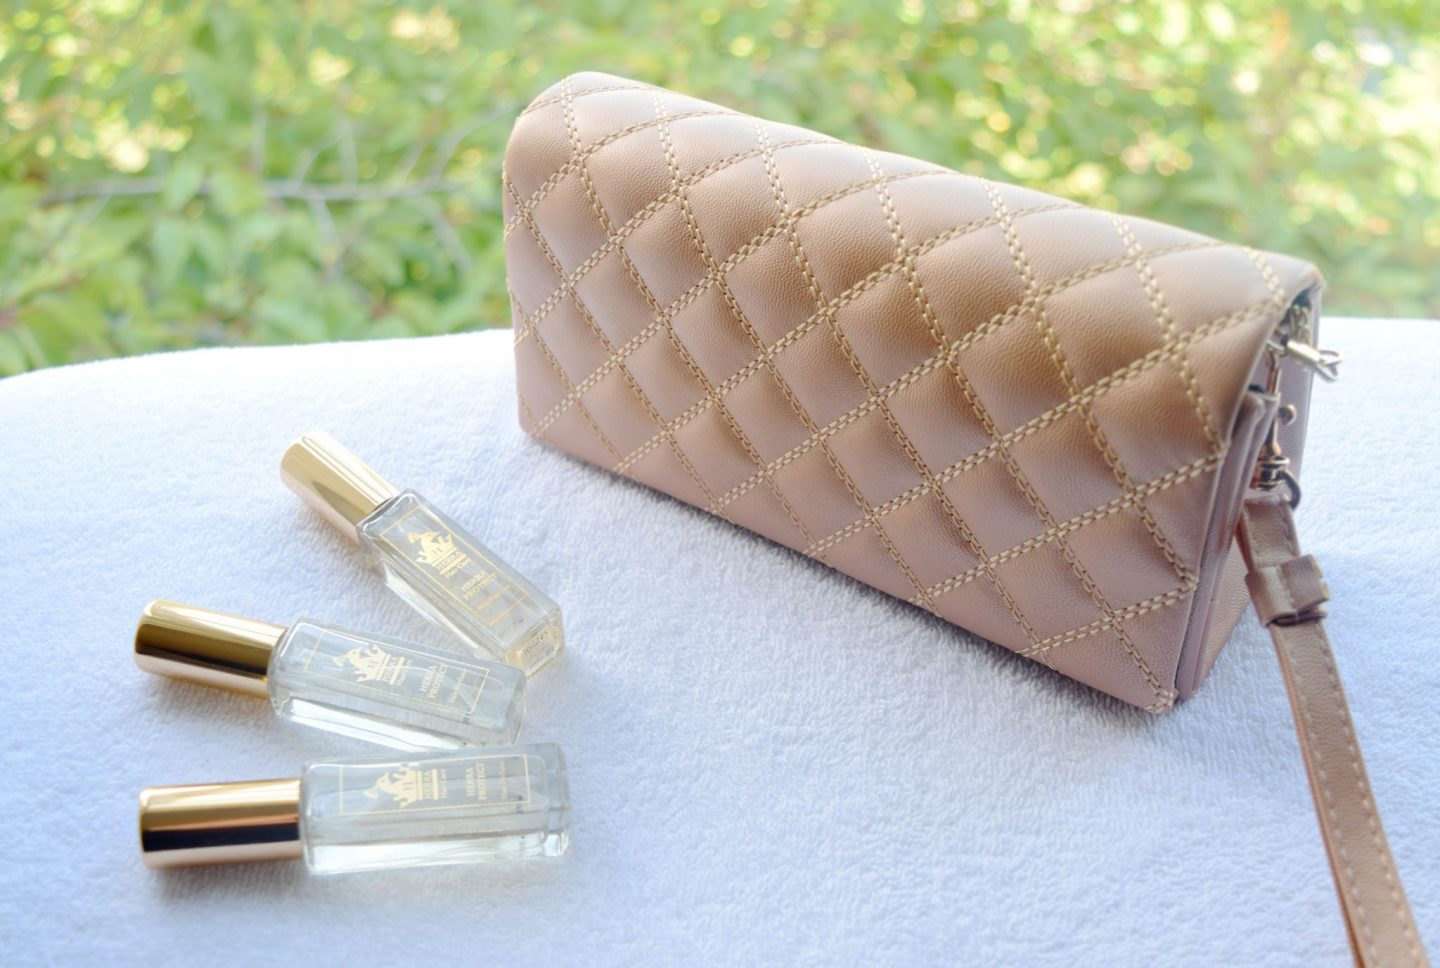 Herra Protecting Hair Perfume Oud Inspired clutch